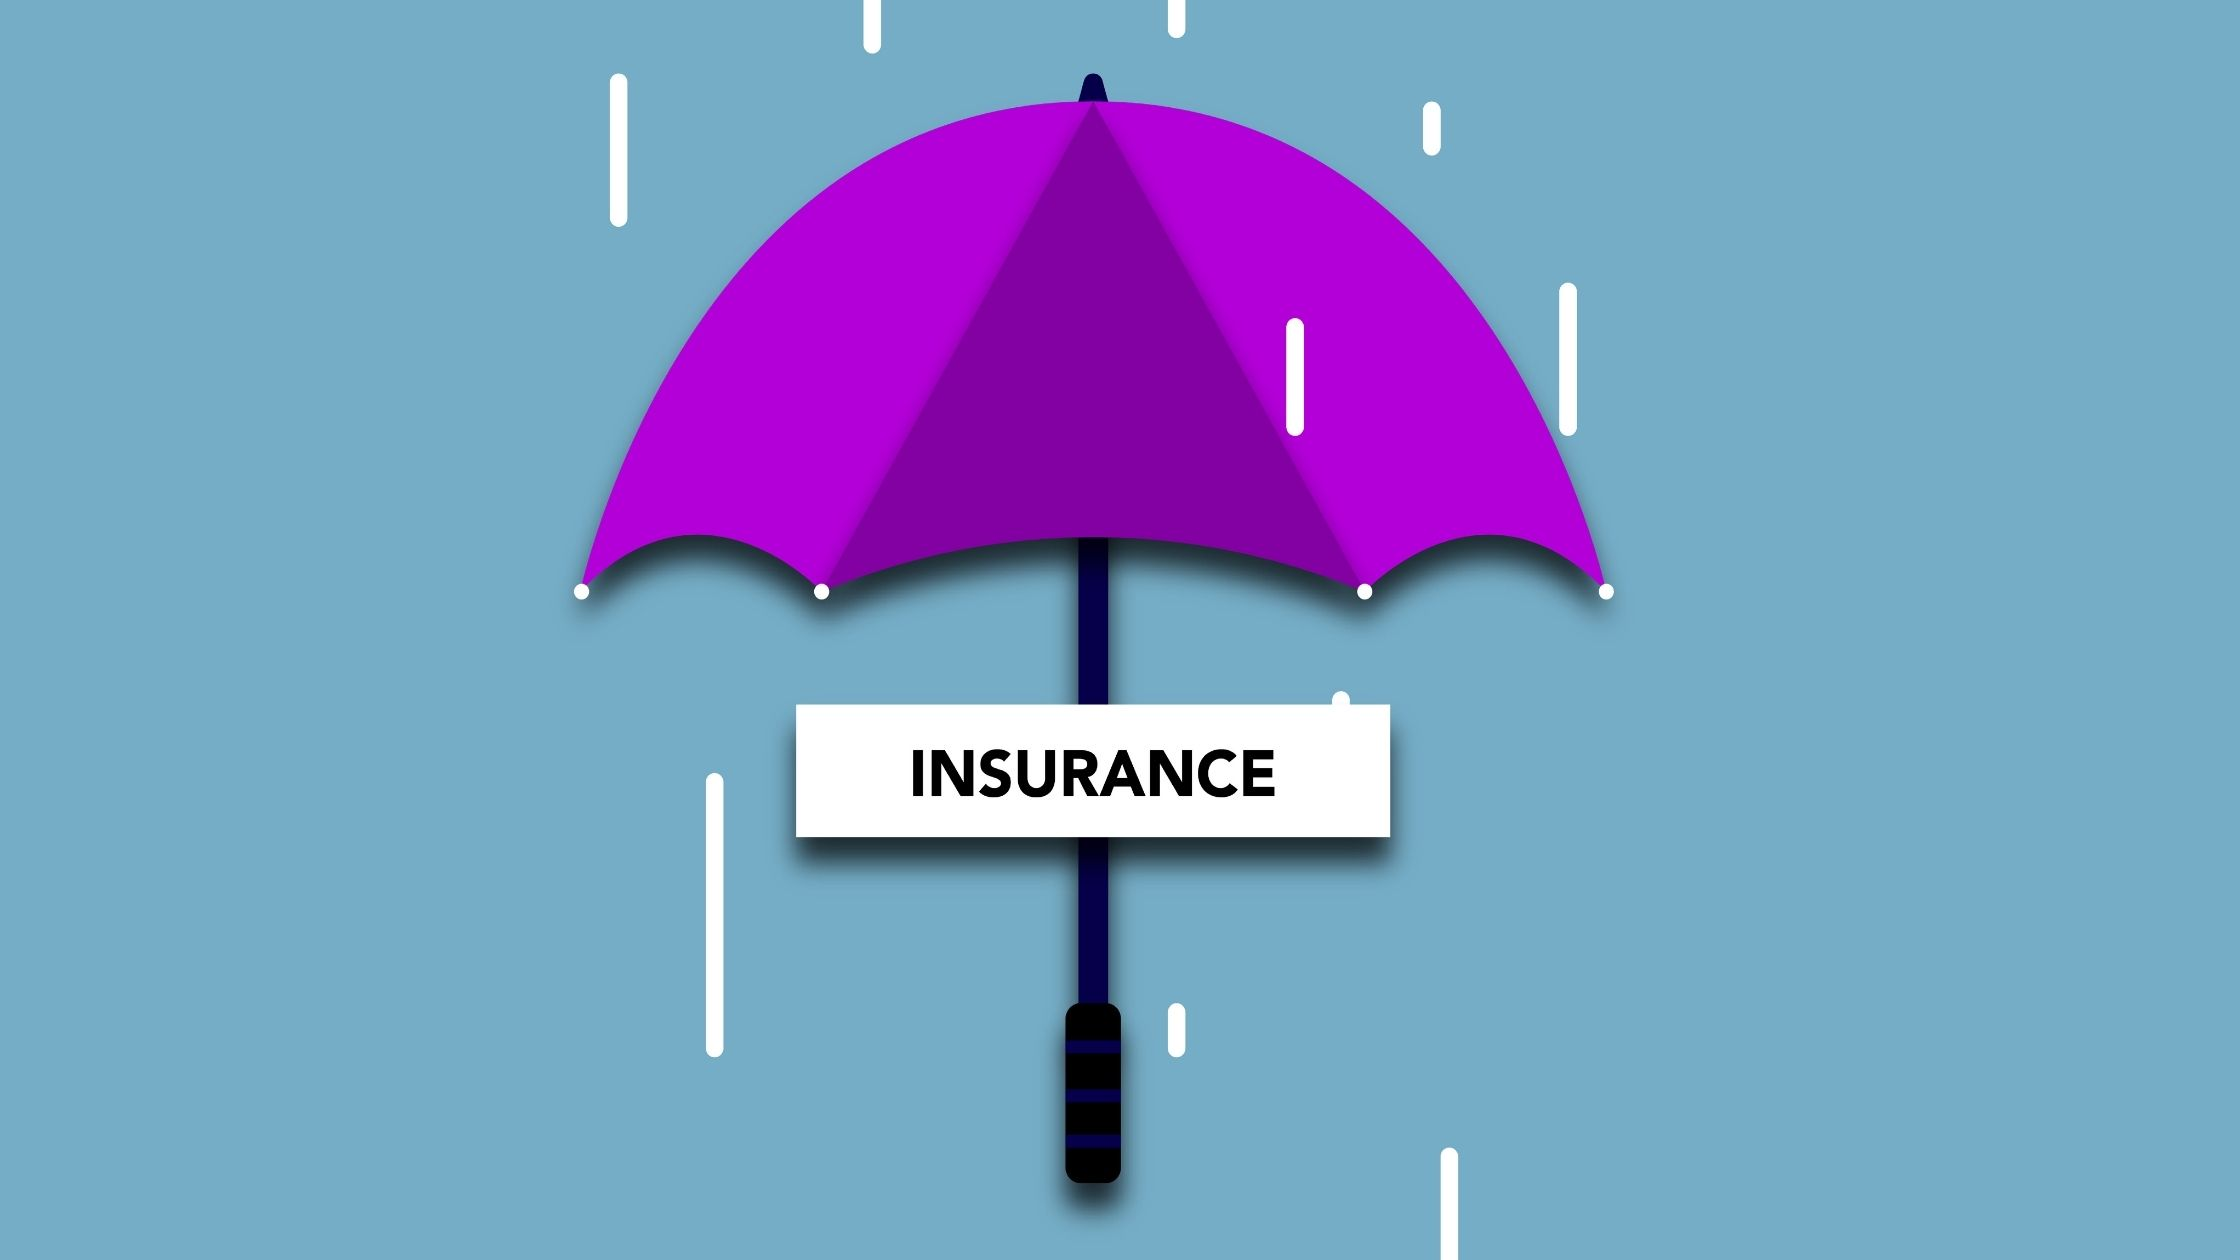 Review Insurance Policies Yourself   How to Review Insurance Policies?